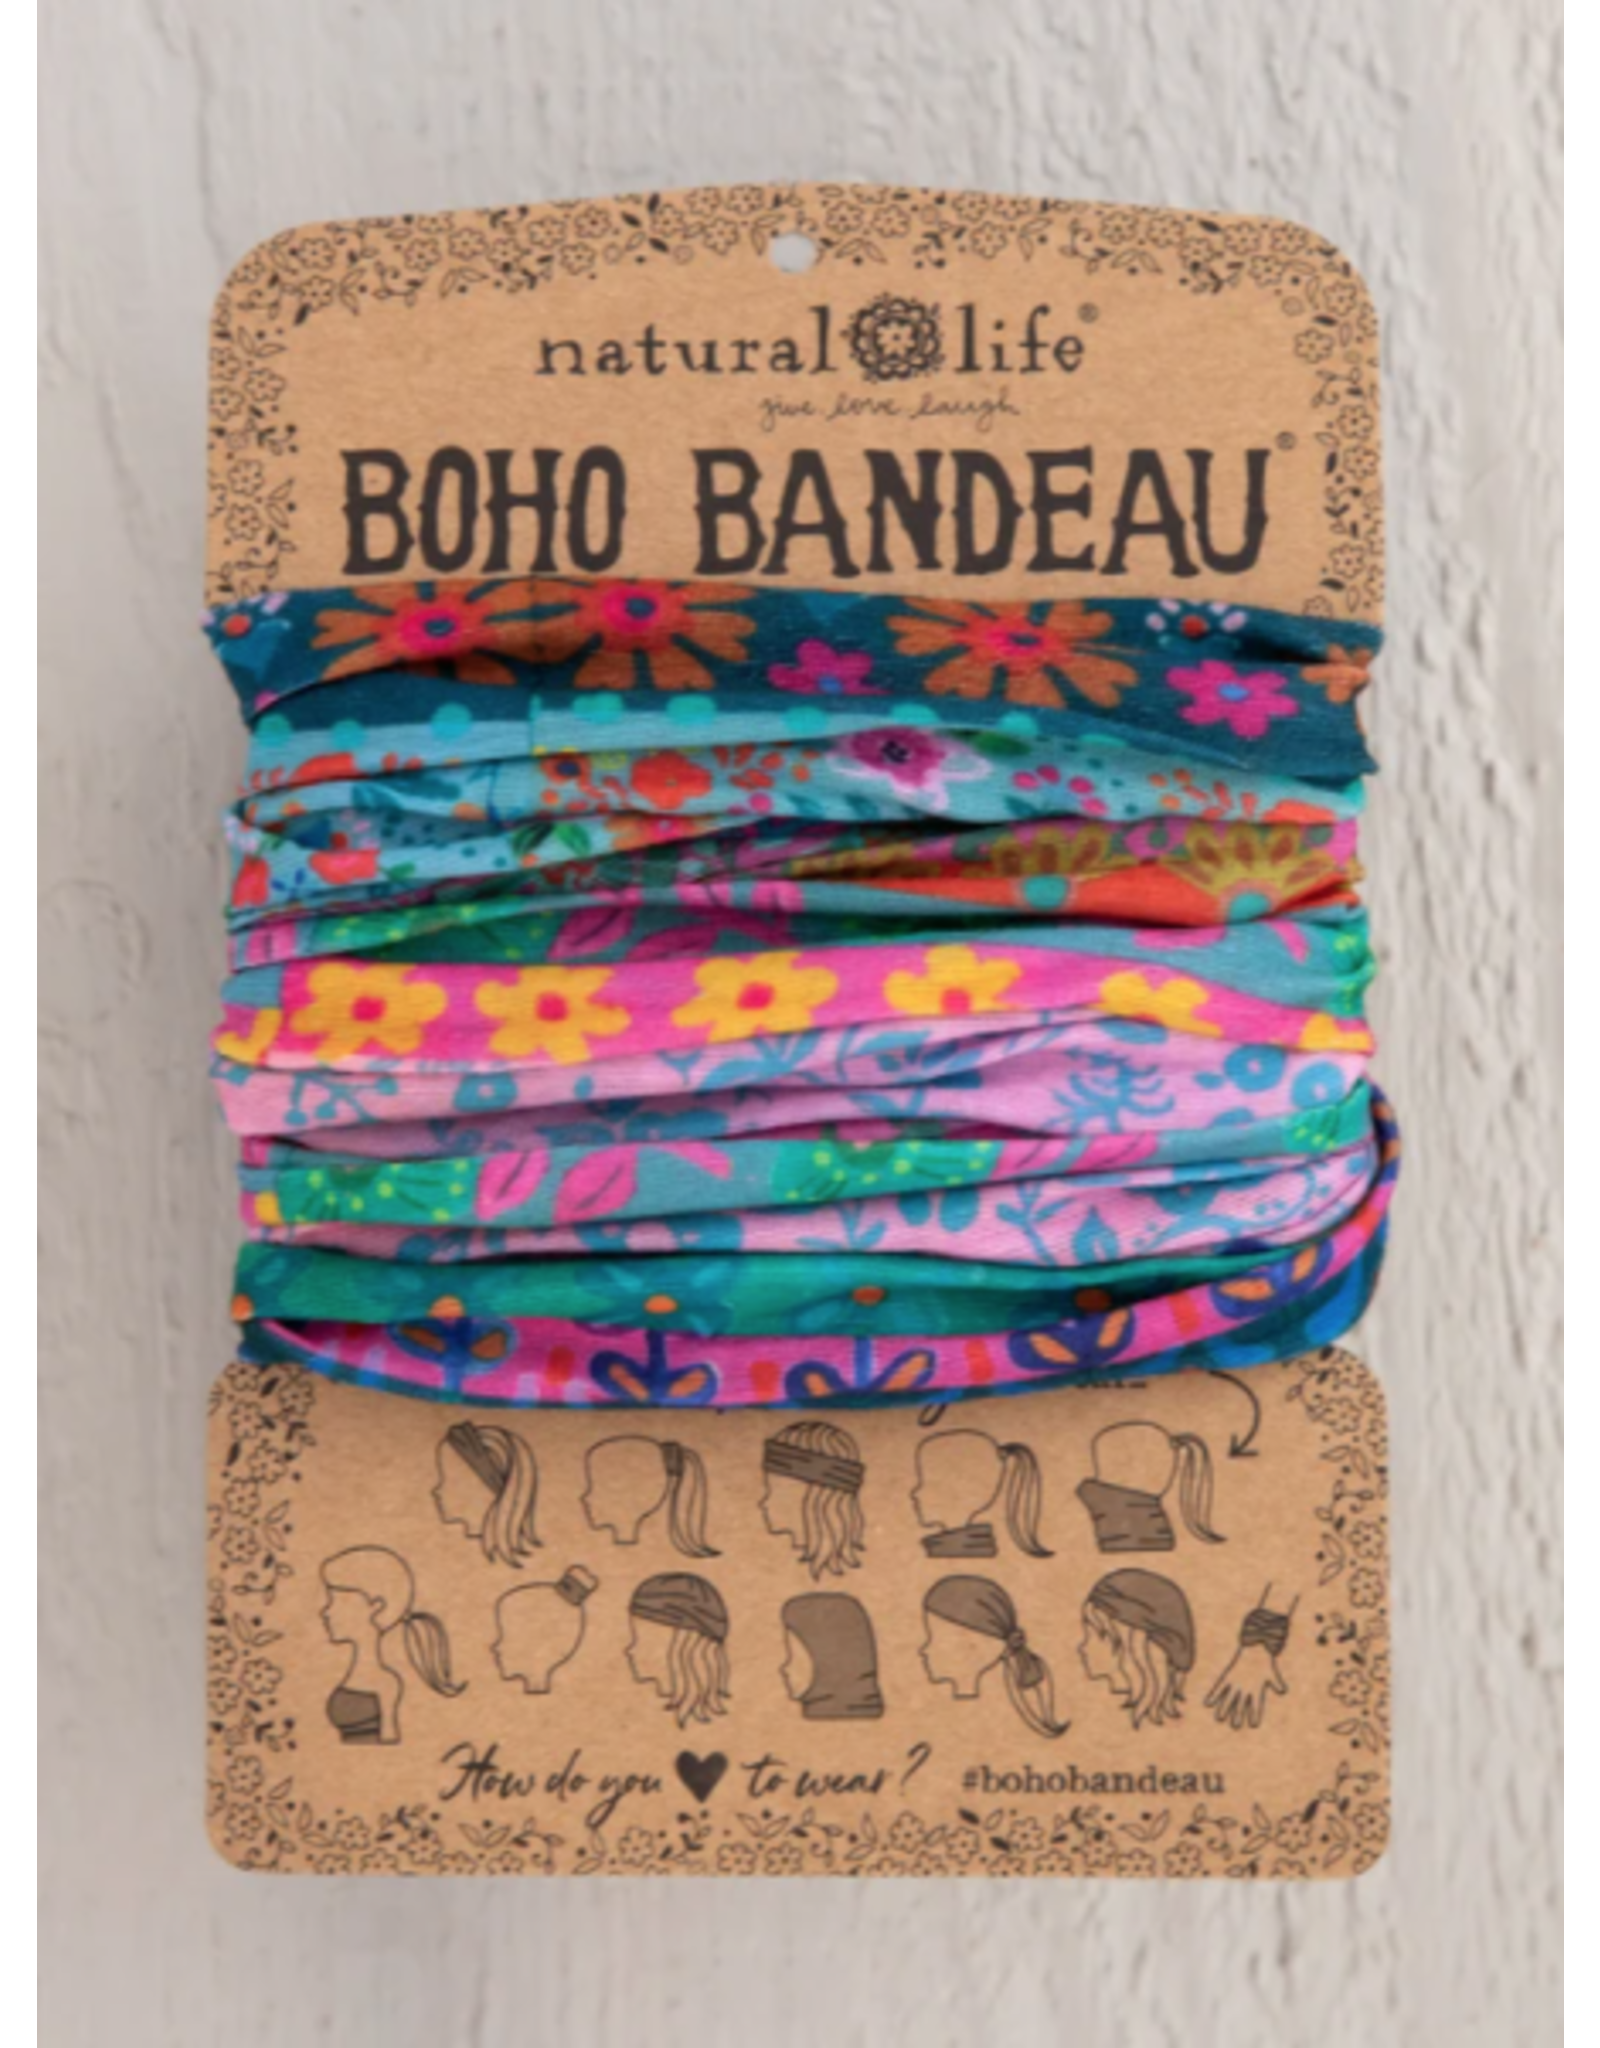 Natural LIfe Boho Bandeau, Blue/Pink Borders